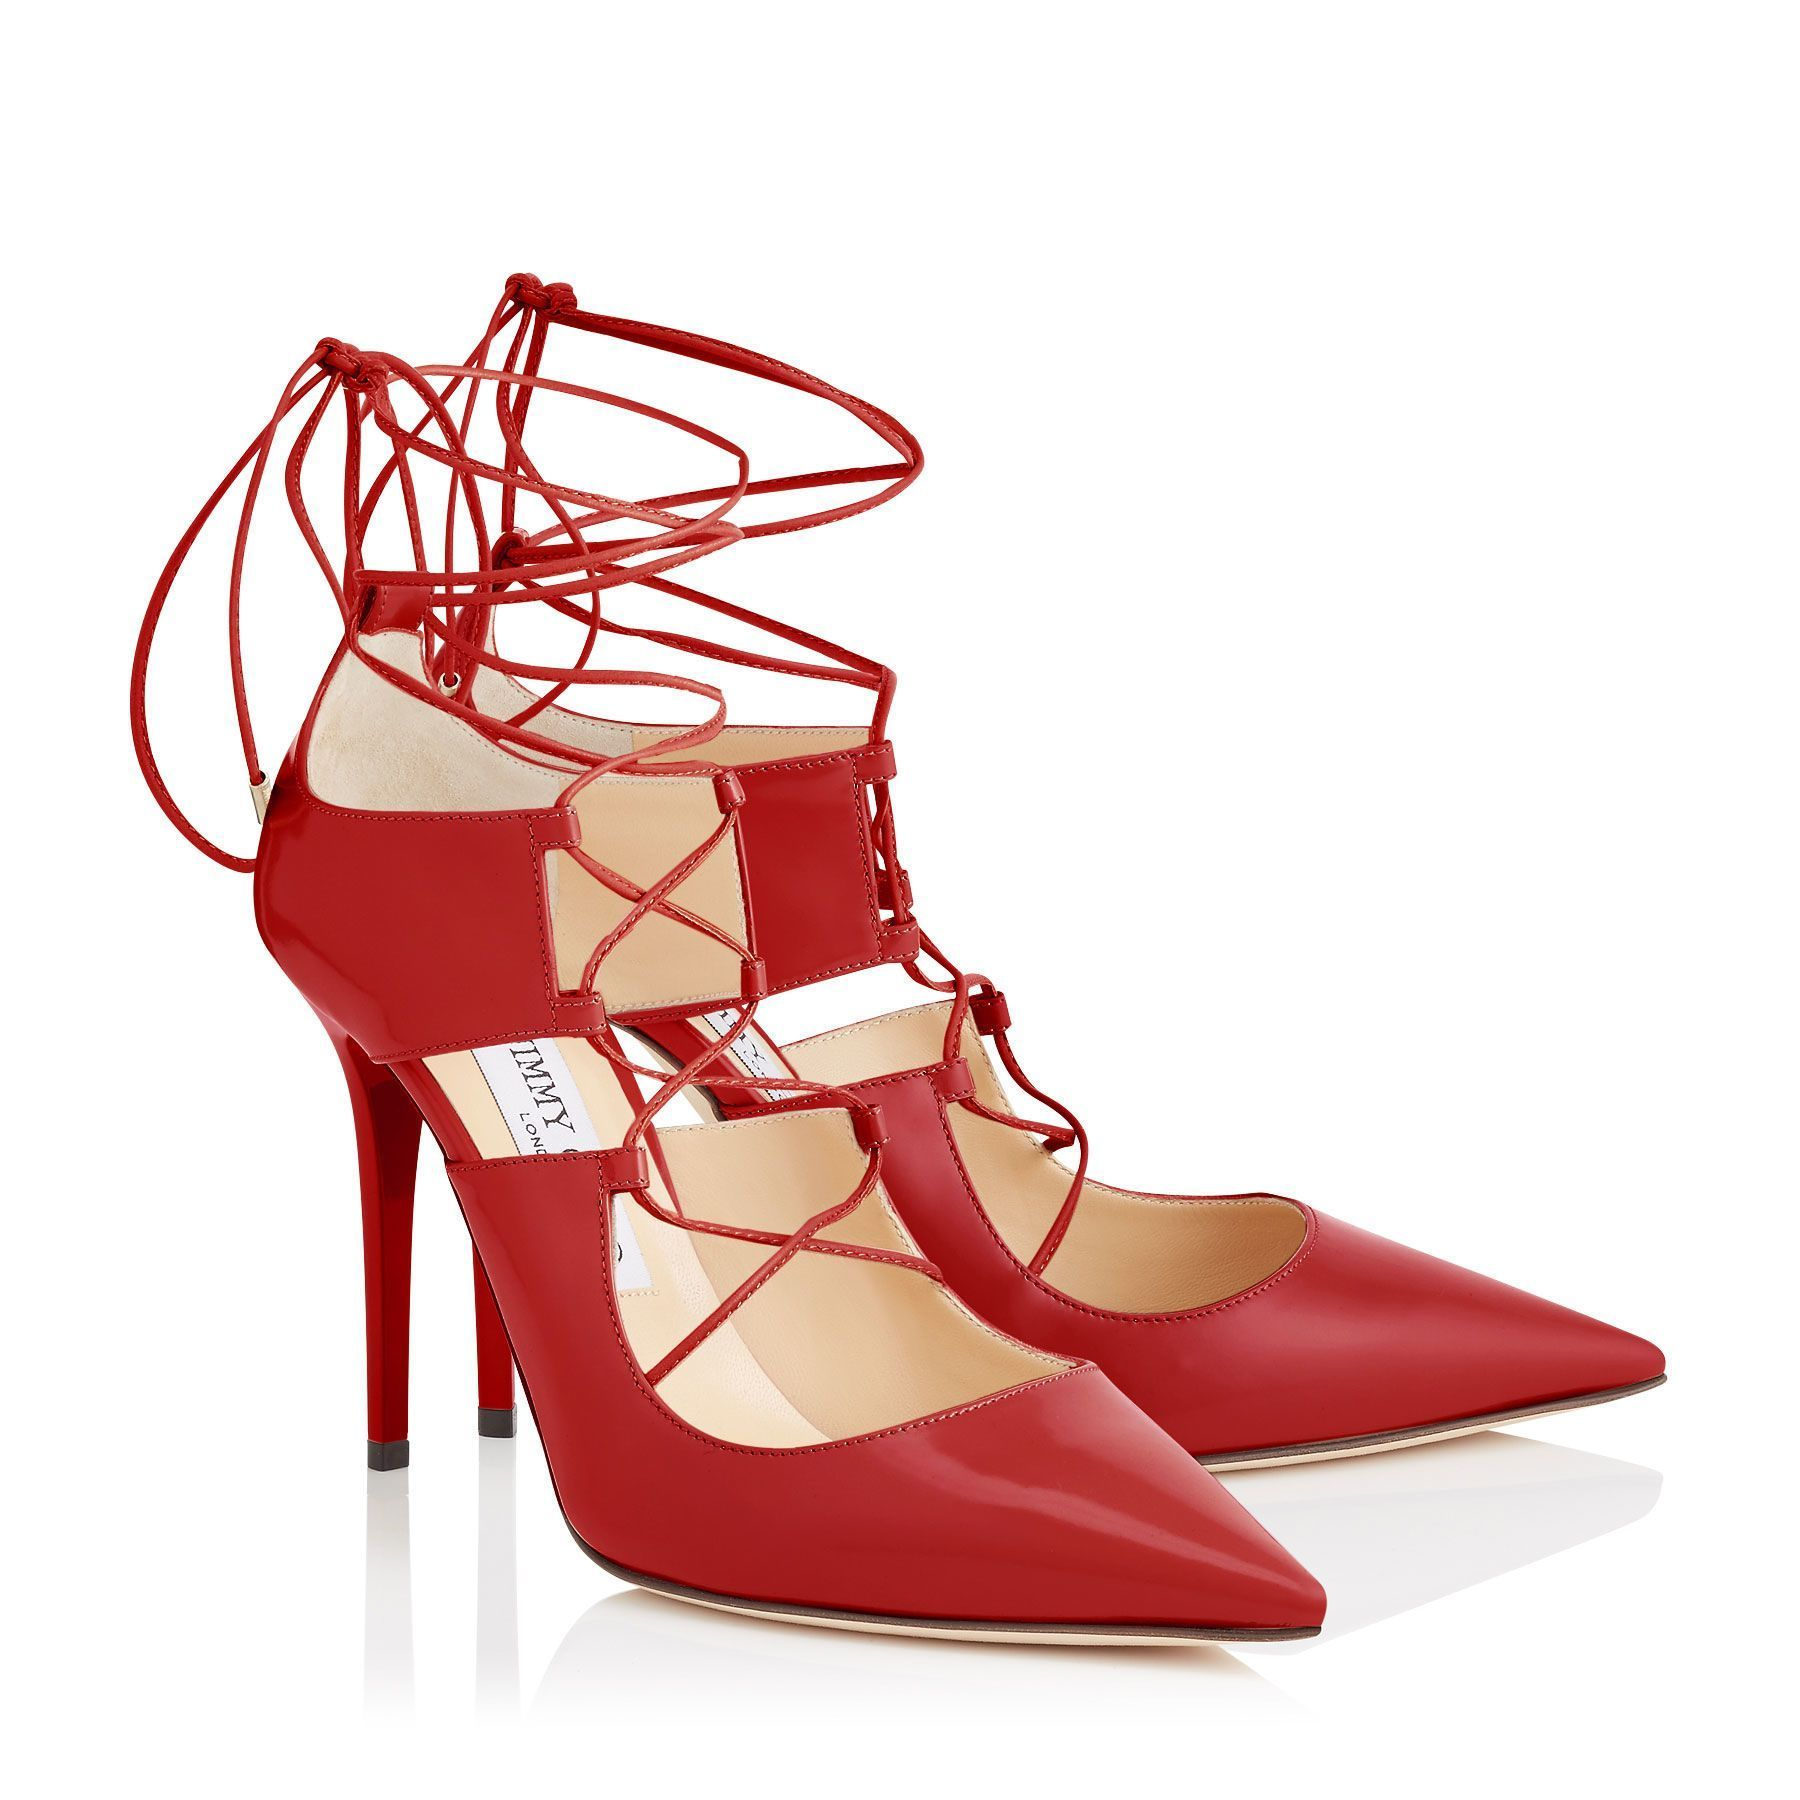 f5de9013c9f The Jimmy Choo red shiny leather pointy toe lace up HOOPS pumps ...